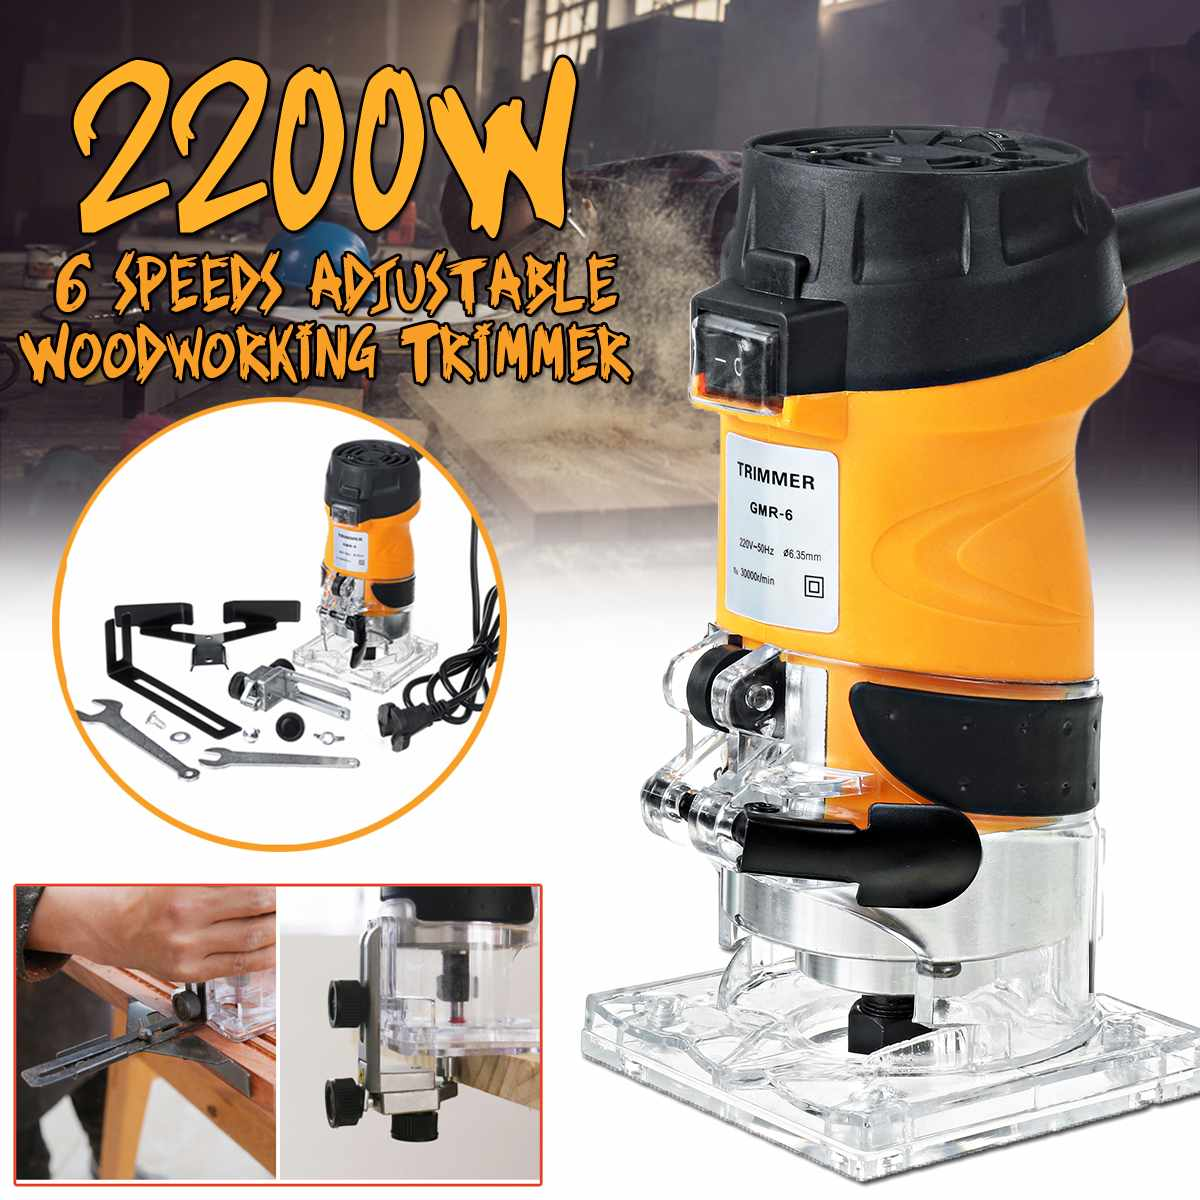 220V Wood Electric Trimmer Adjustable Electric Power Trimmer Wood Laminator Router Edge Joiners For Woodworking Wood Milling